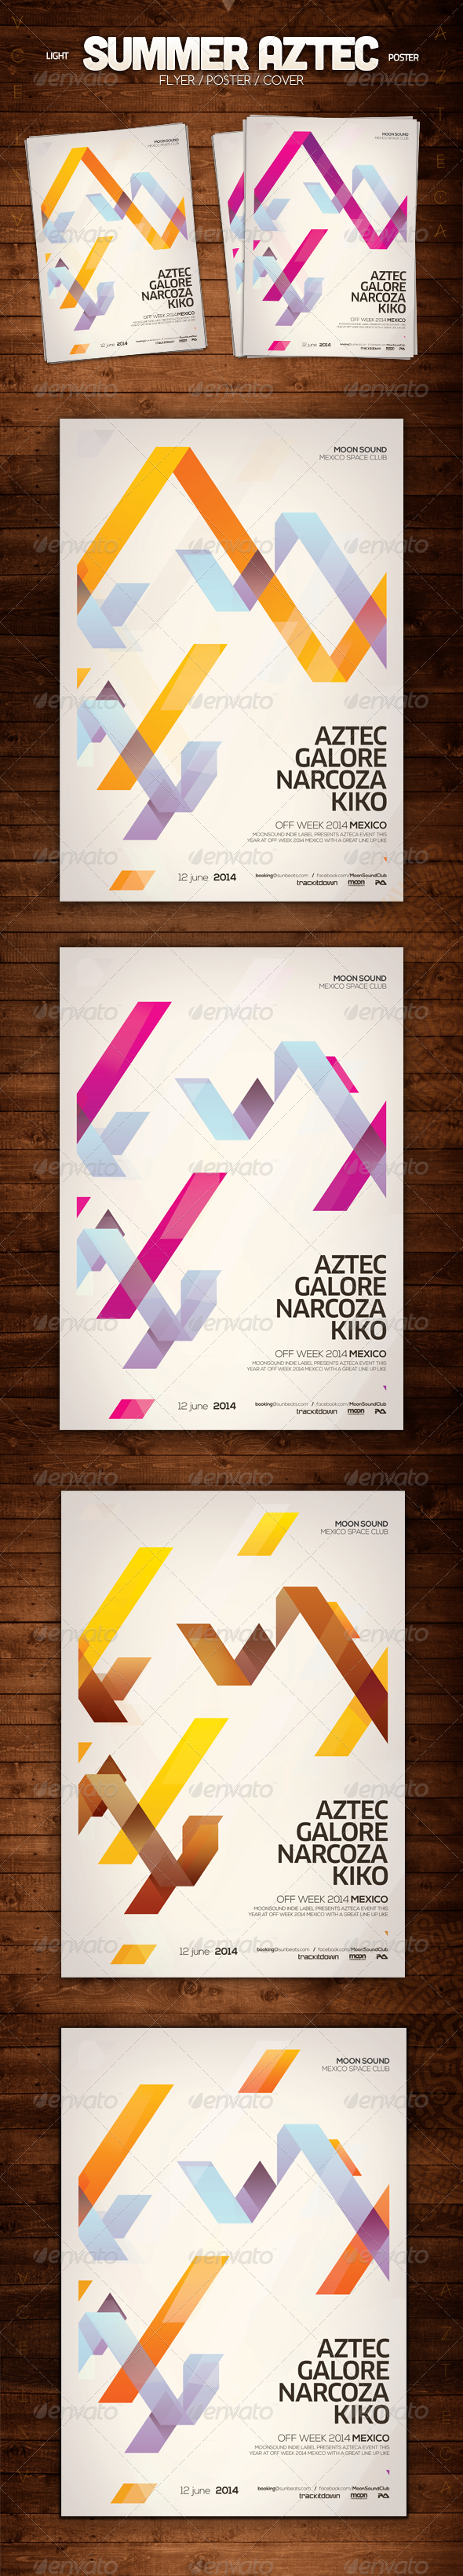 Summer Aztec Poster - Clubs & Parties Events